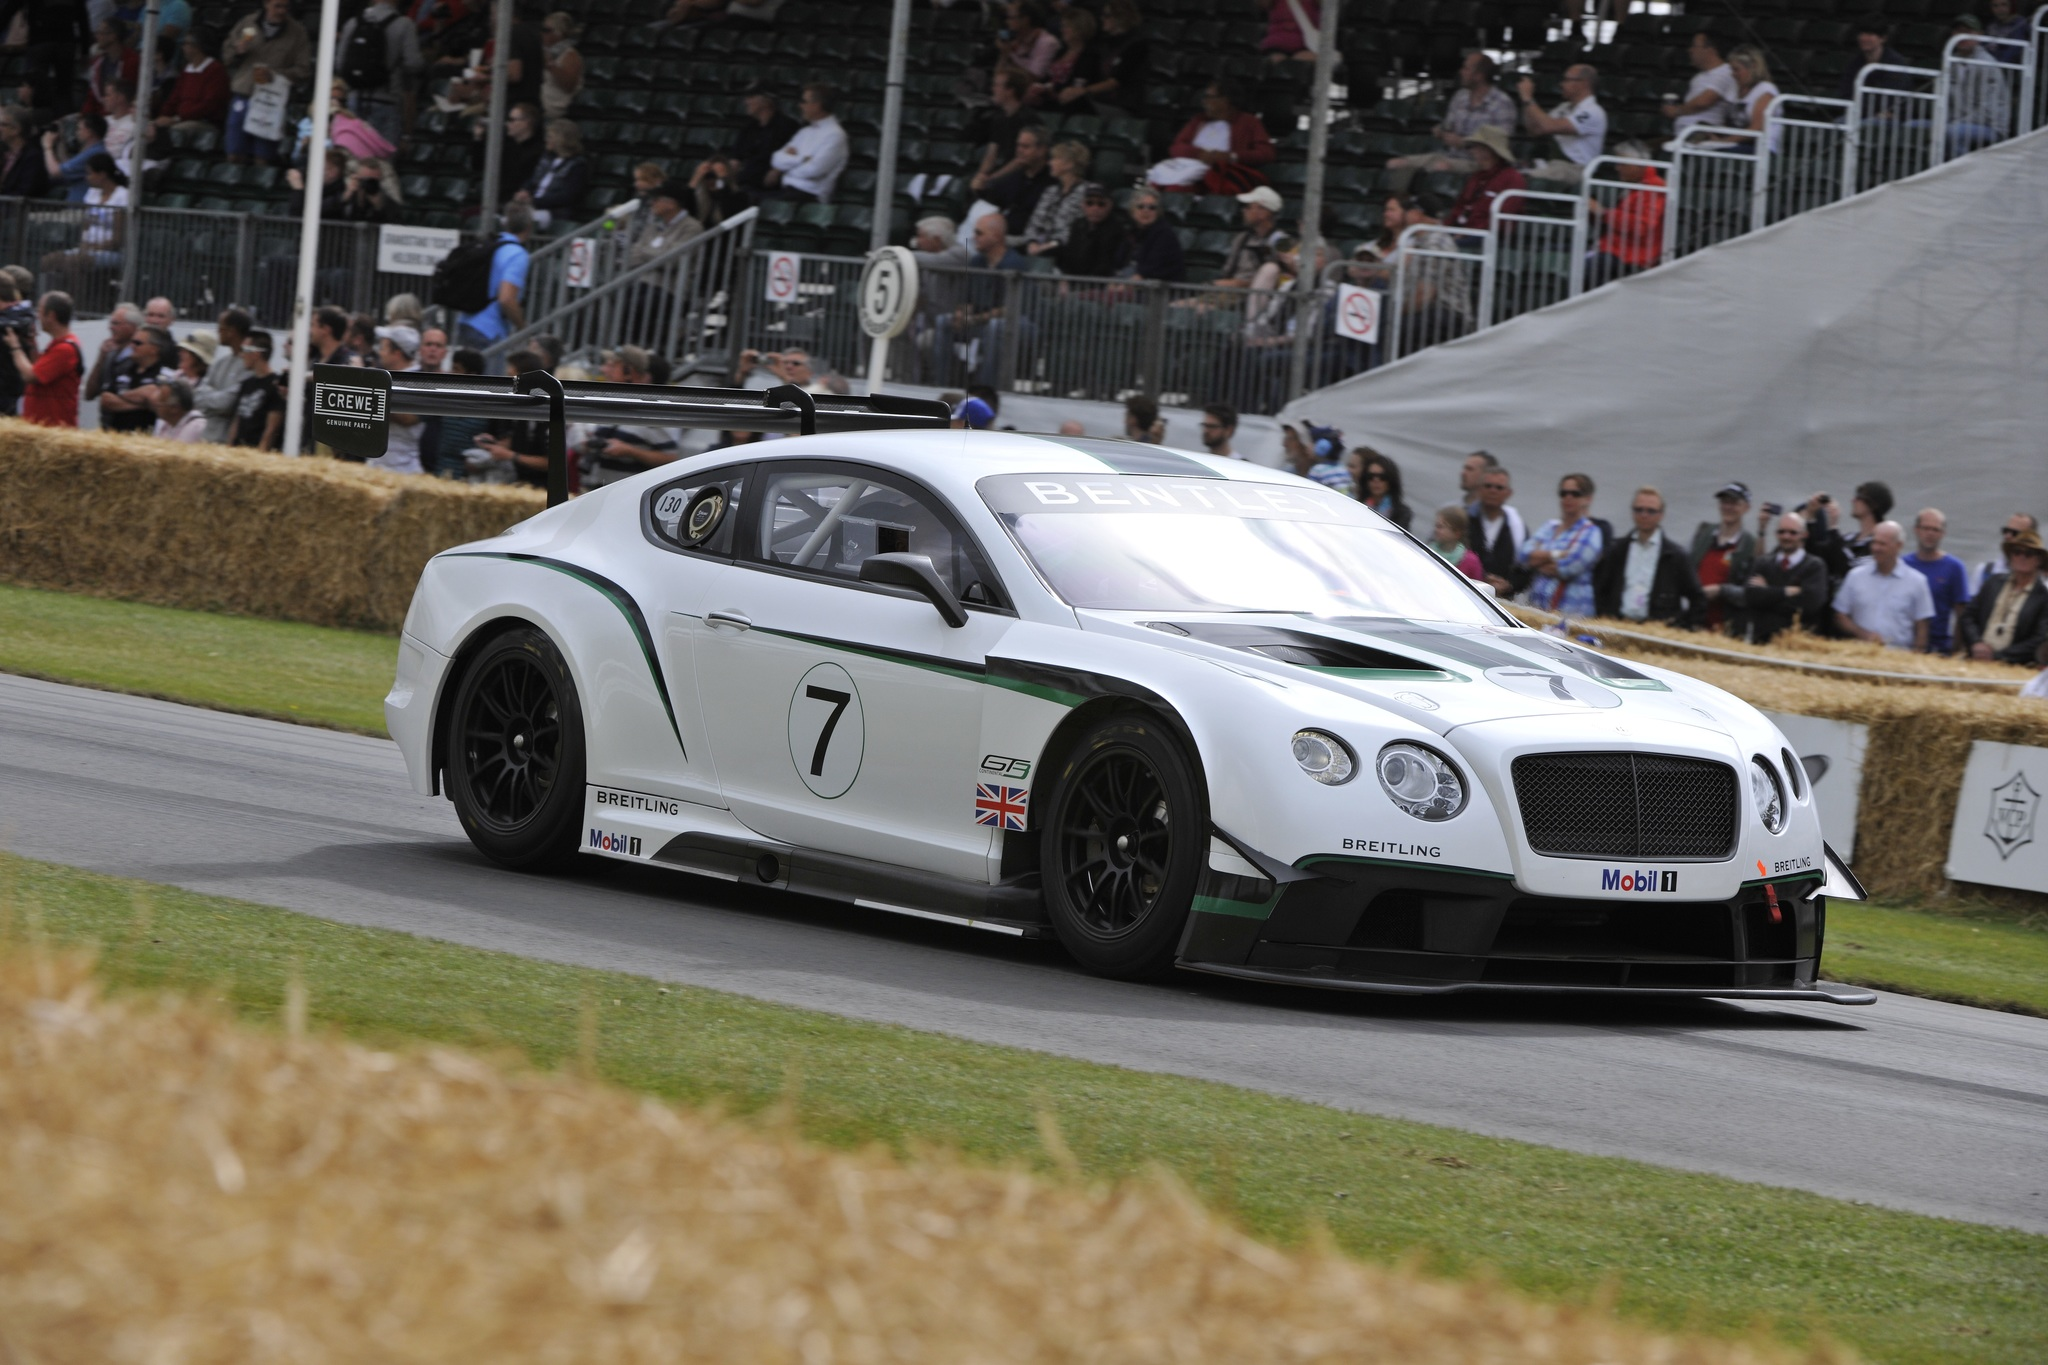 The GT3 racing version of Benley's Continental GT is racing the the 2014 season as an all-new racecar.